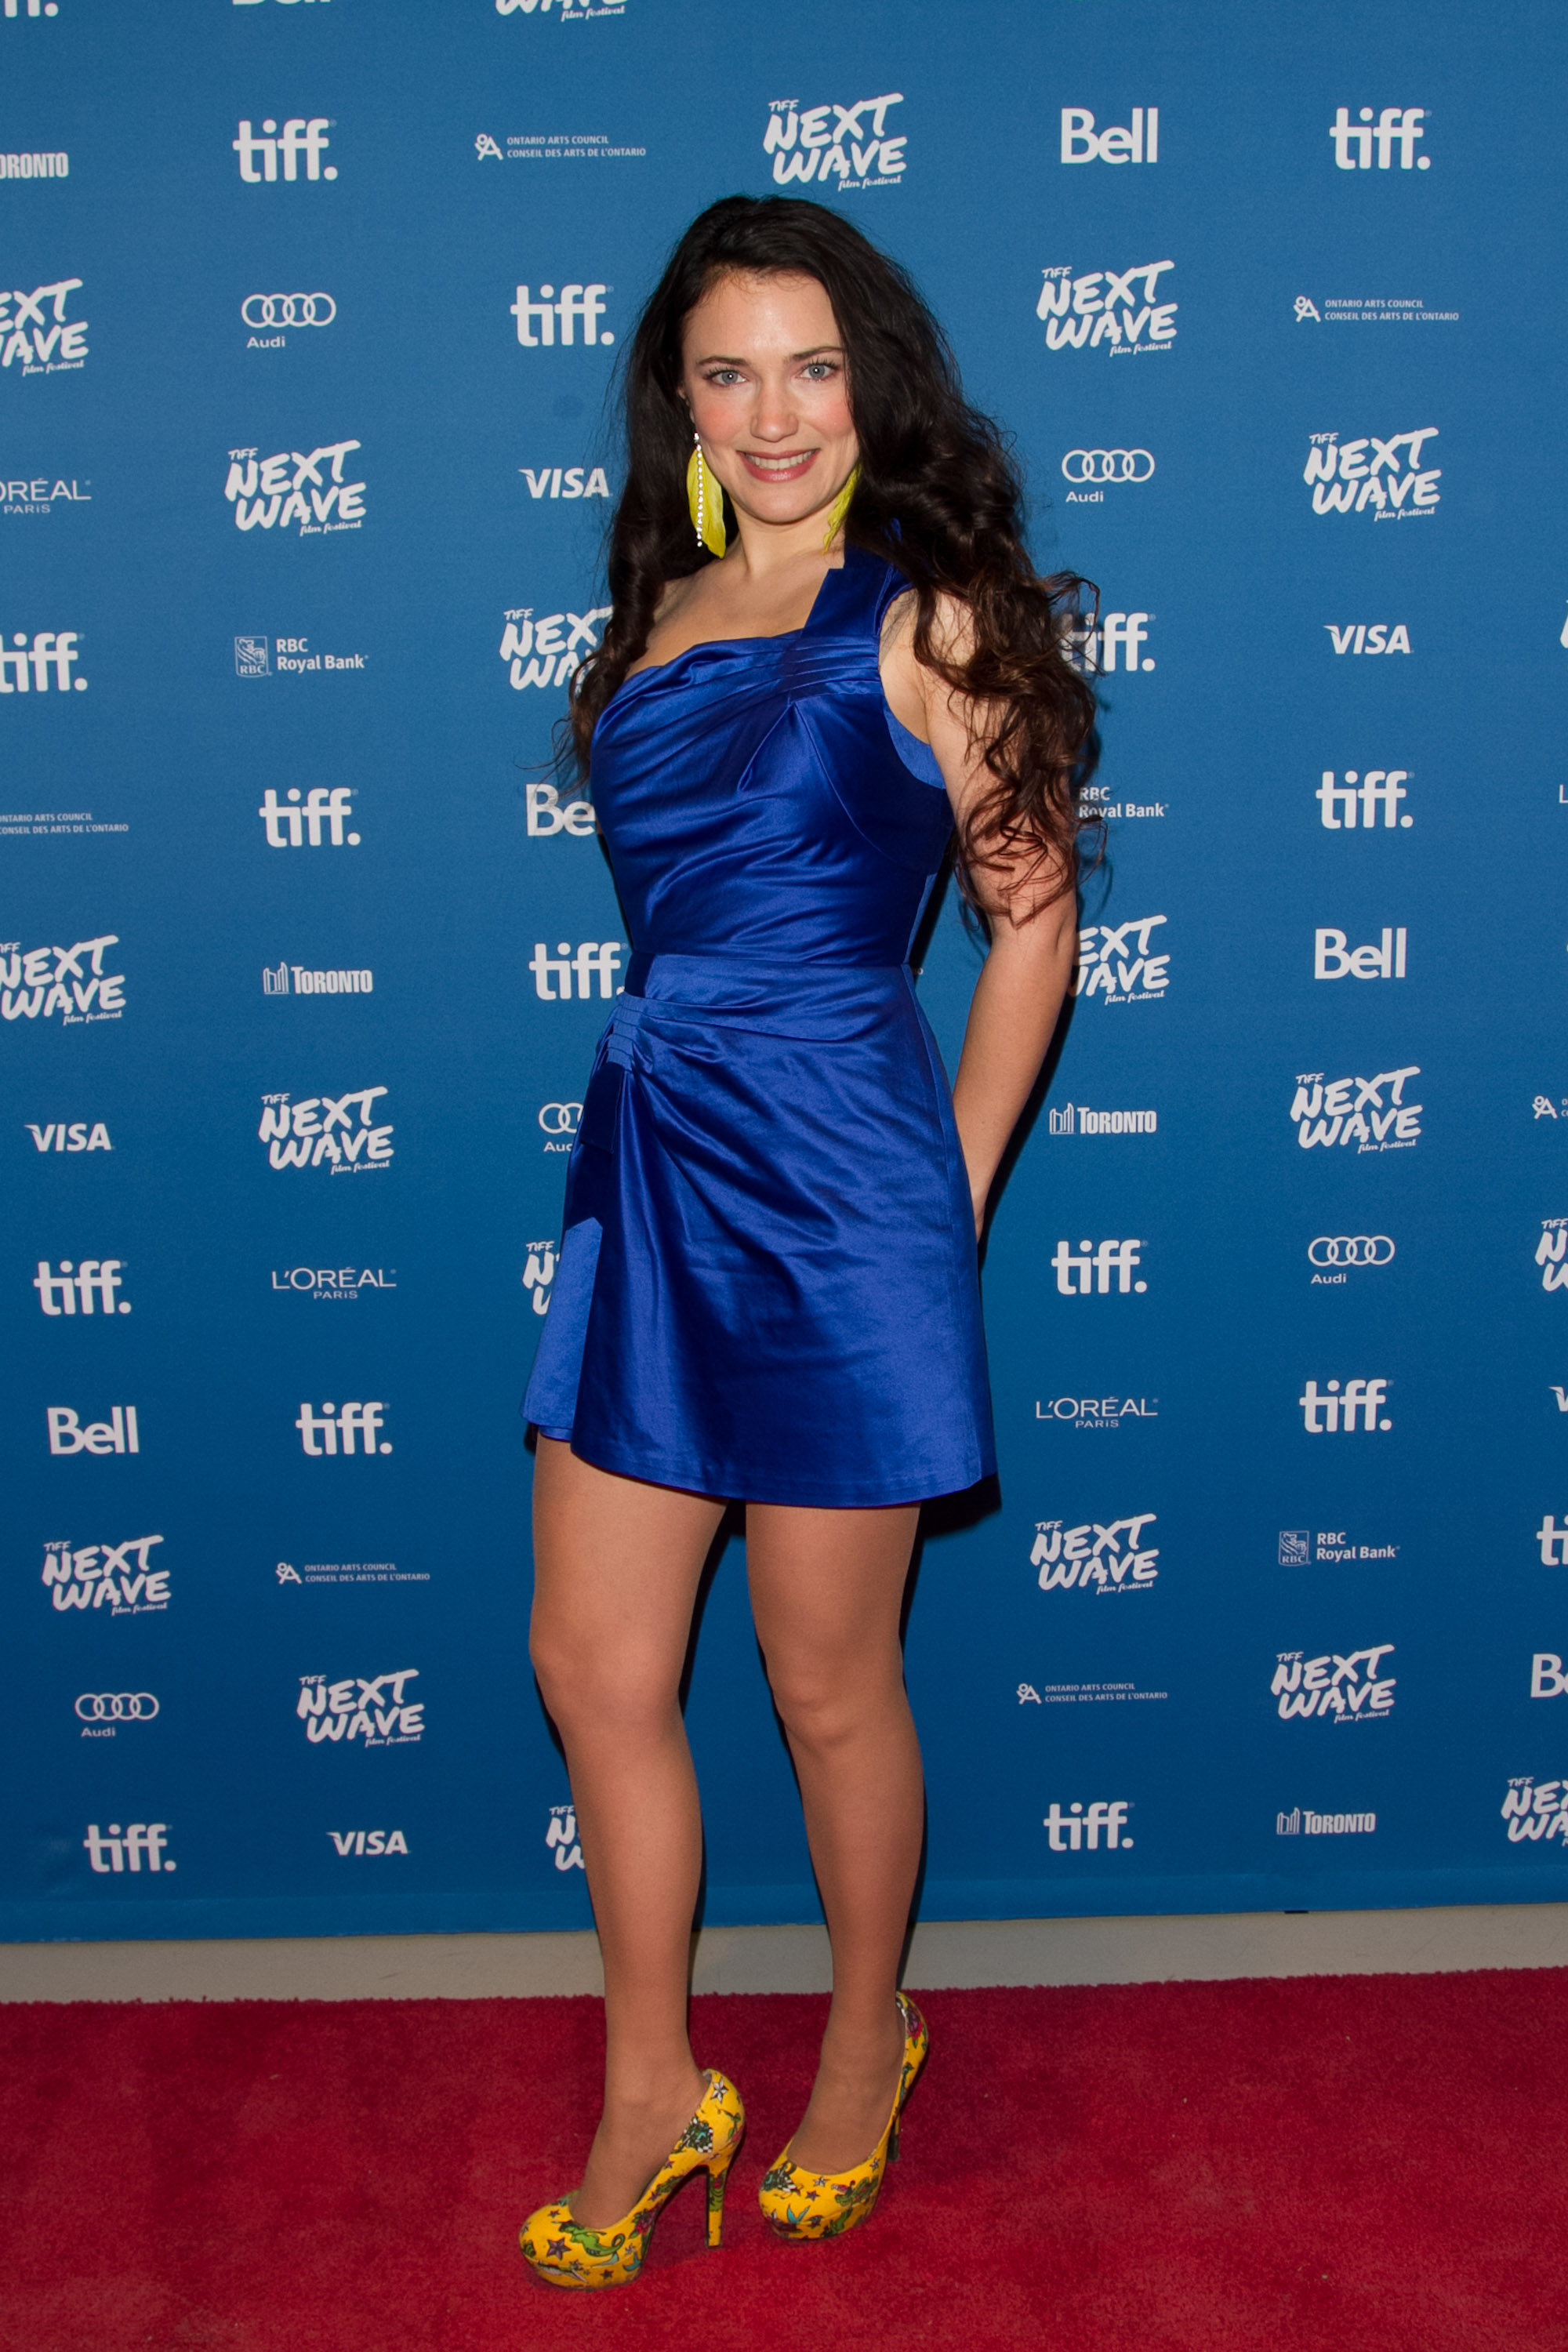 April Mullen (Director/Actress) at the North American Premiere of Dead Before Dawn 3D.  TIFF Next Wave Film Festival.  Photo by: Sarjoun Faour, WireImage/Getty for TIFF